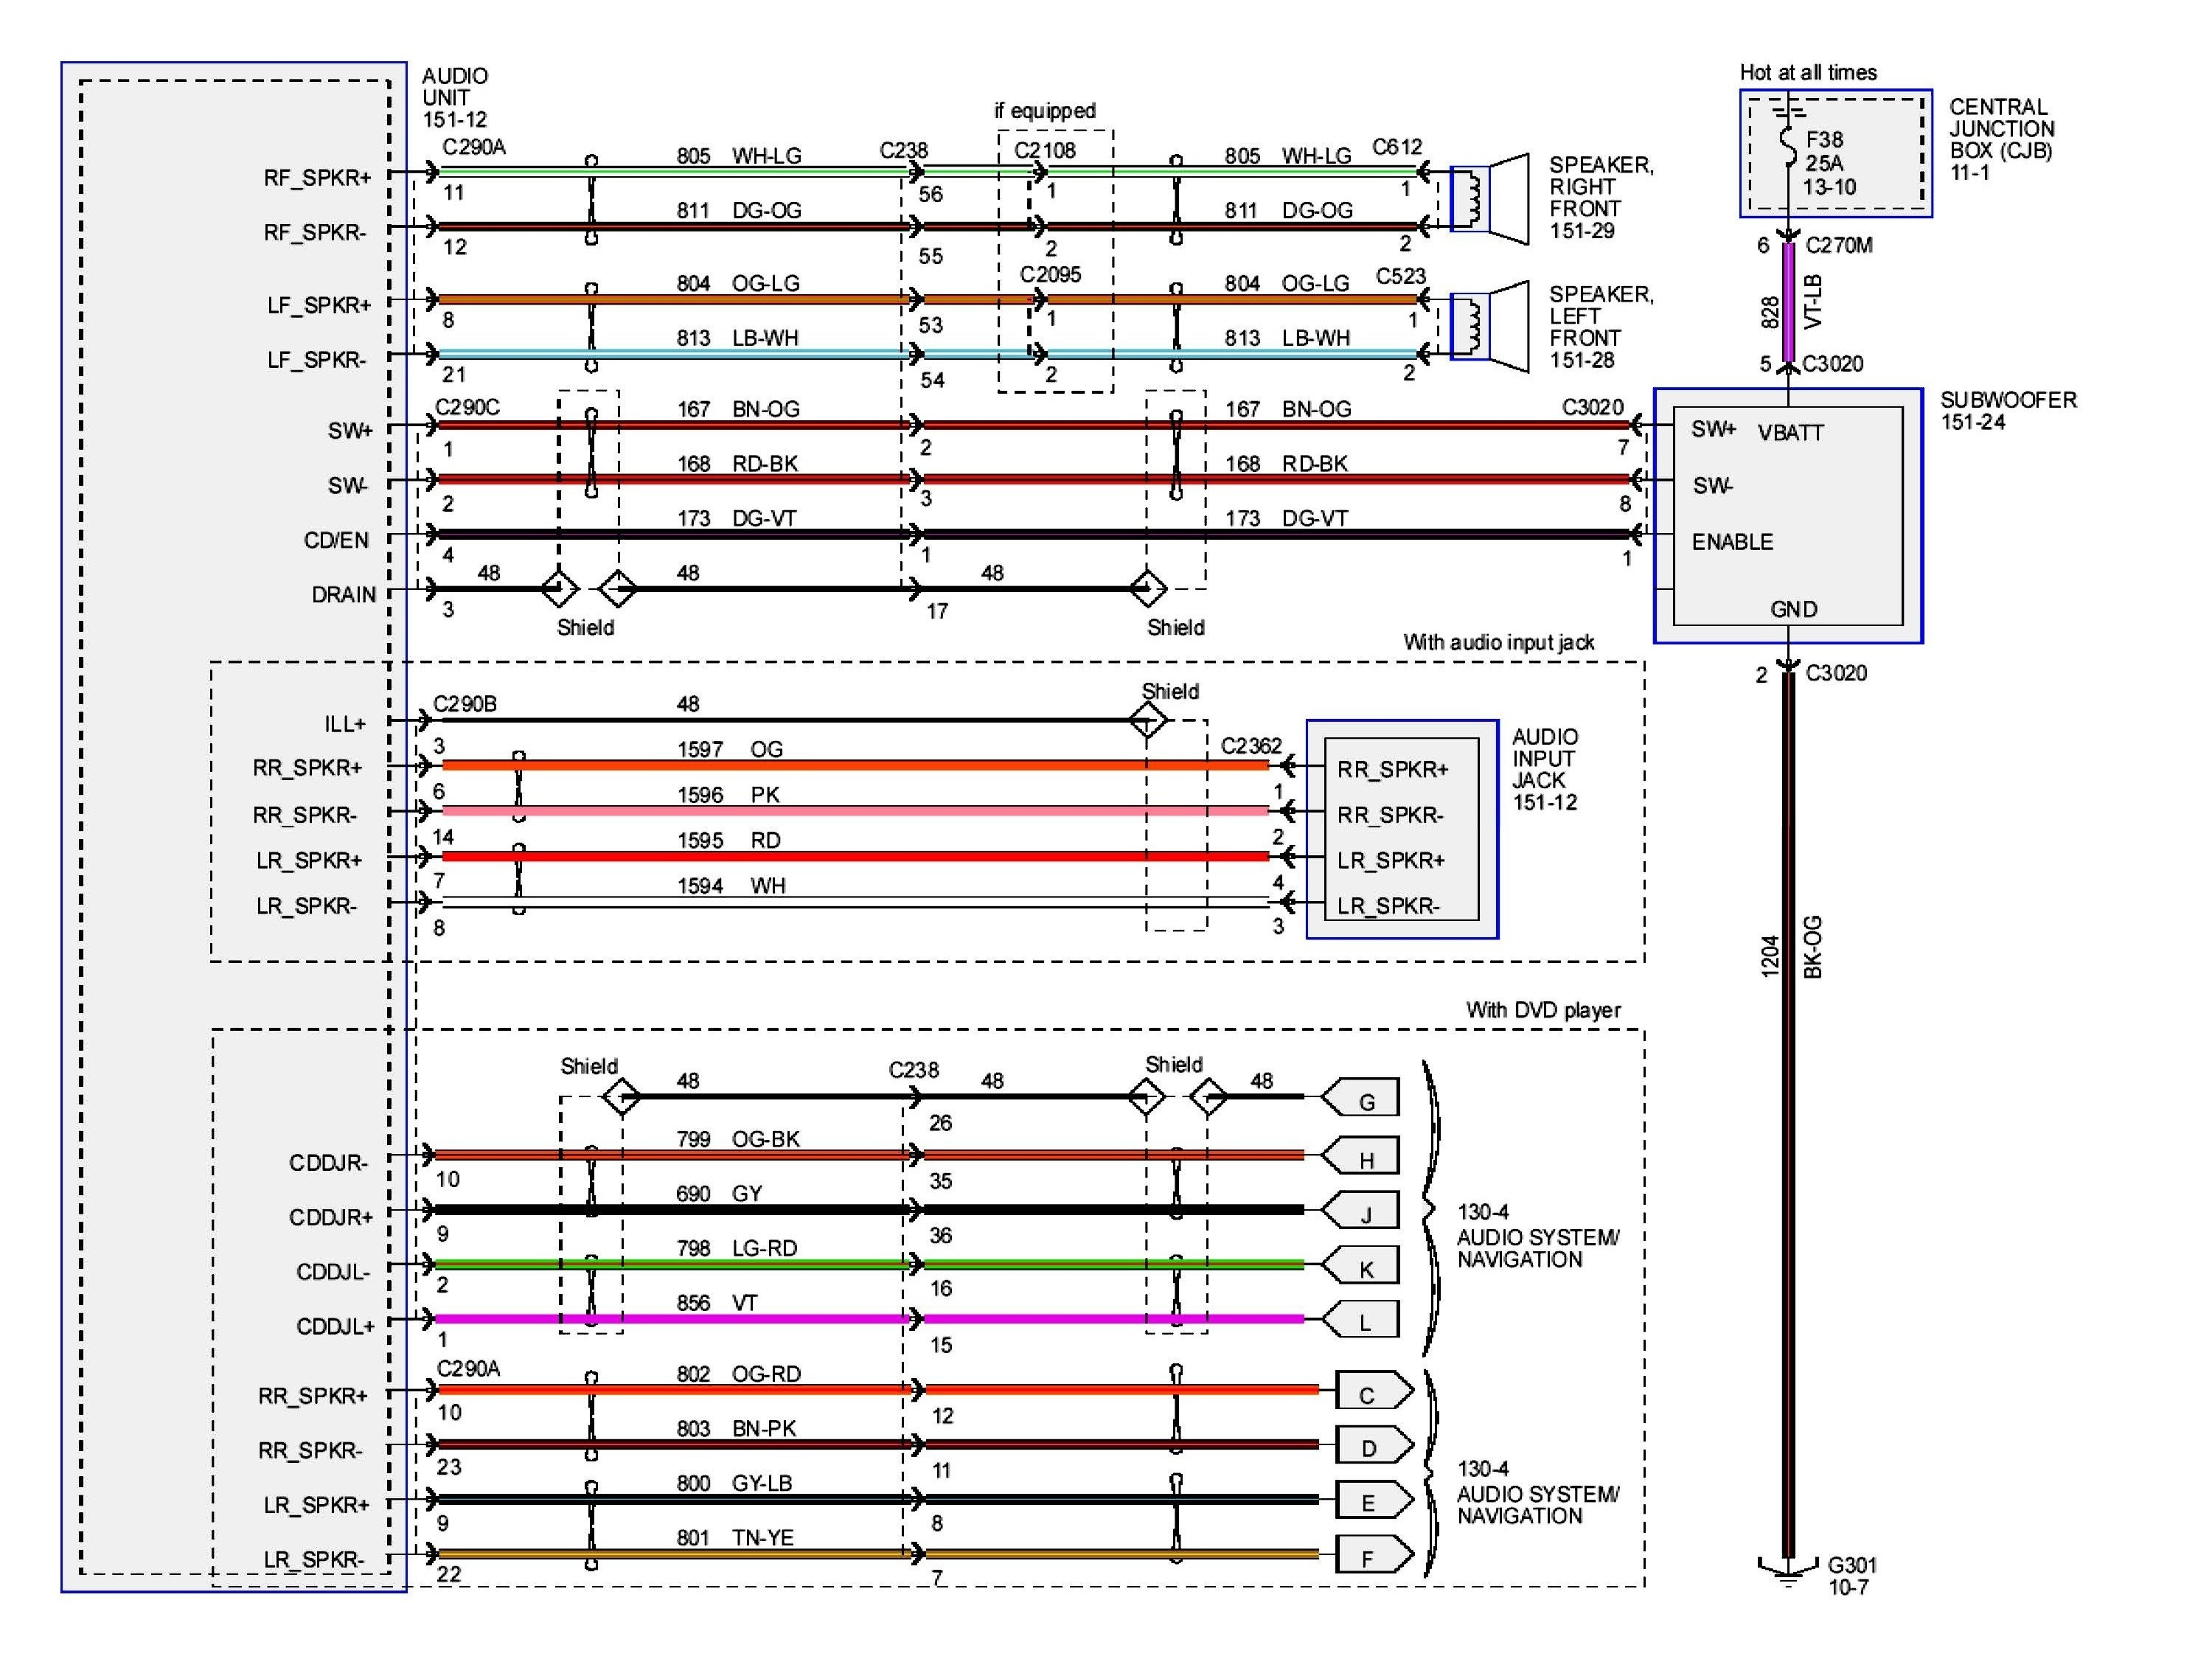 Ford F 250 Super Duty Stereo Wiring Diagram | Wiring Diagram - Ford F250 Stereo Wiring Diagram